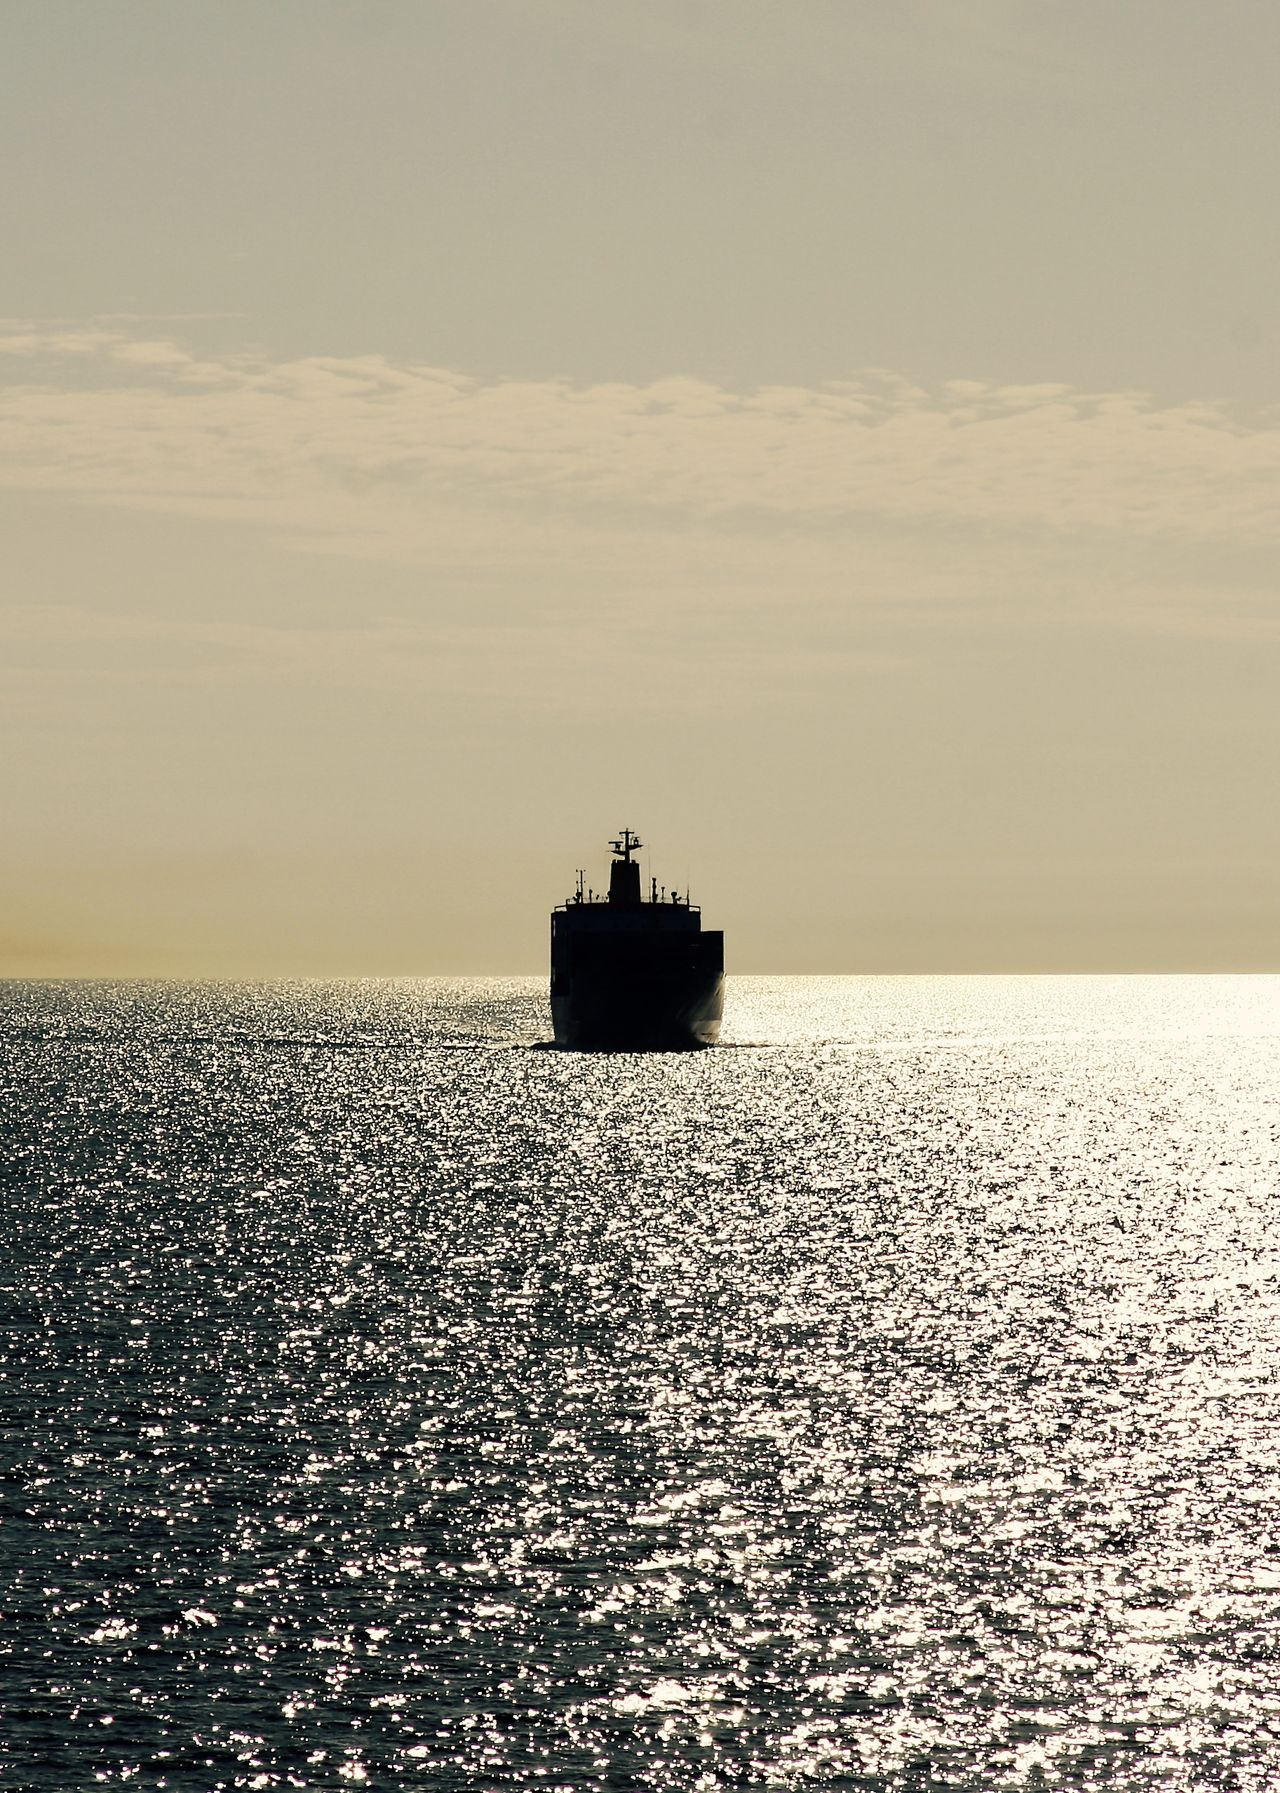 cargo ship at sunset in the sea Baltic Sea Bulk Carrier Business Calm Cargo Ship Cruise Evening Freight Freighter Golden Hour Marine Nautical Vessel Outdoors Reflection Sea Ship Sky Sunset Surface Tranquility Transportation Travel Vessel Water Waterfront